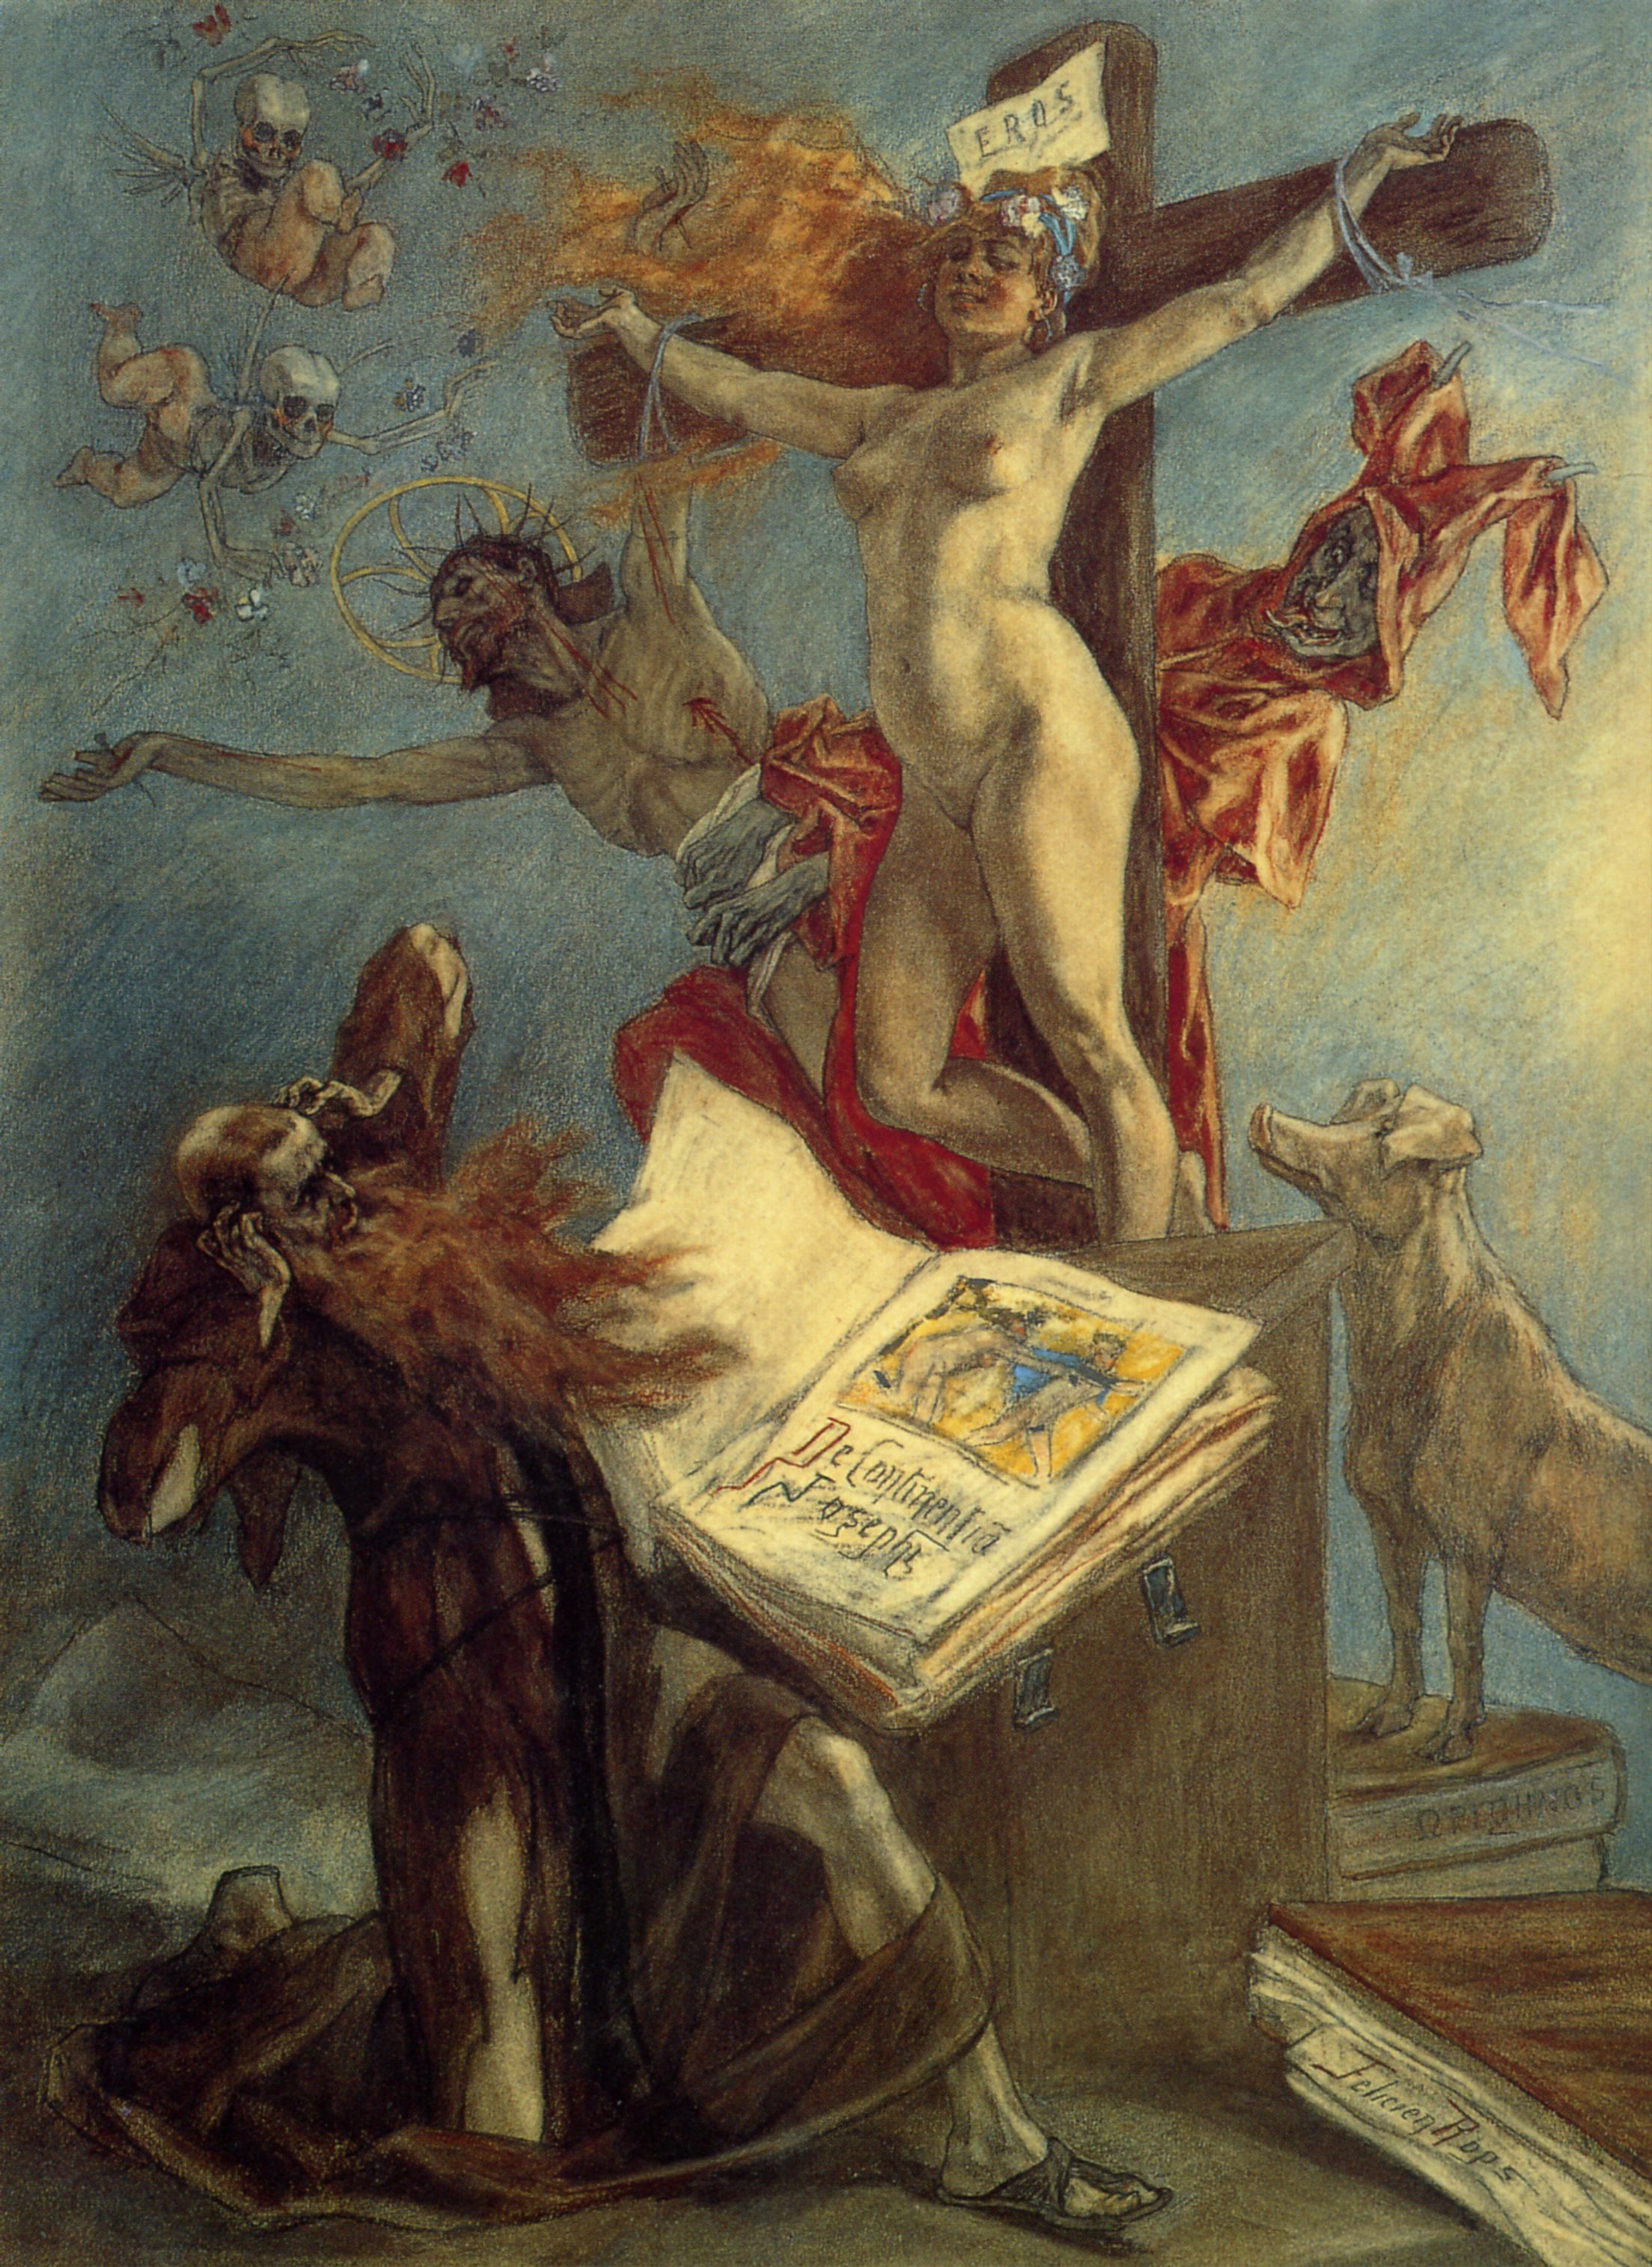 The Temptation of St. Anthony, 1878